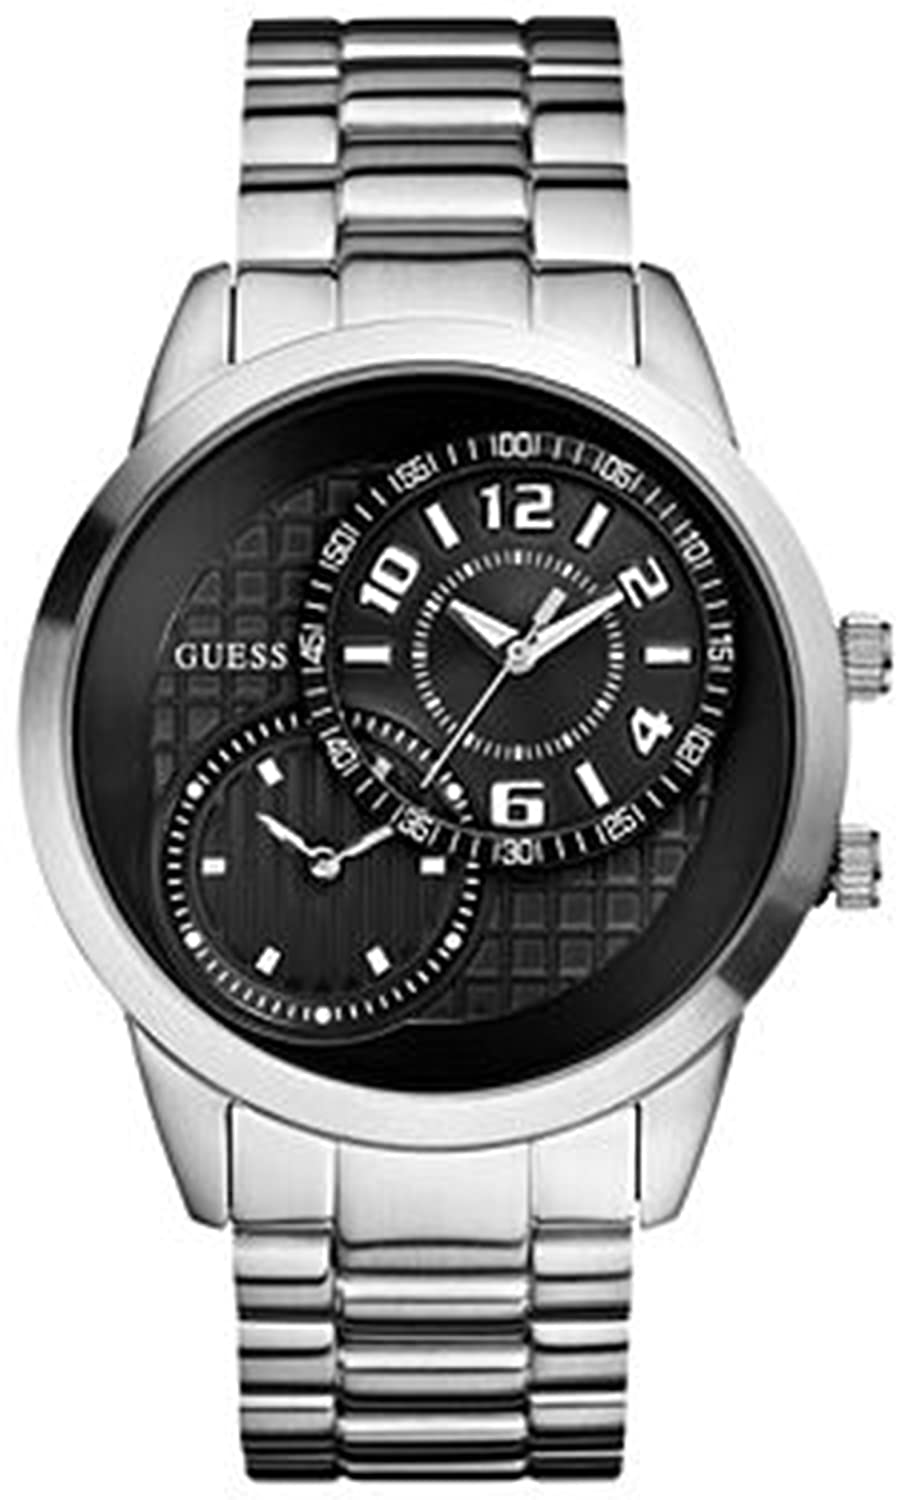 Amazon.com: Guess Mens U13616G1 Silver Stainless-Steel Quartz Watch with Black Dial: Guess: Watches